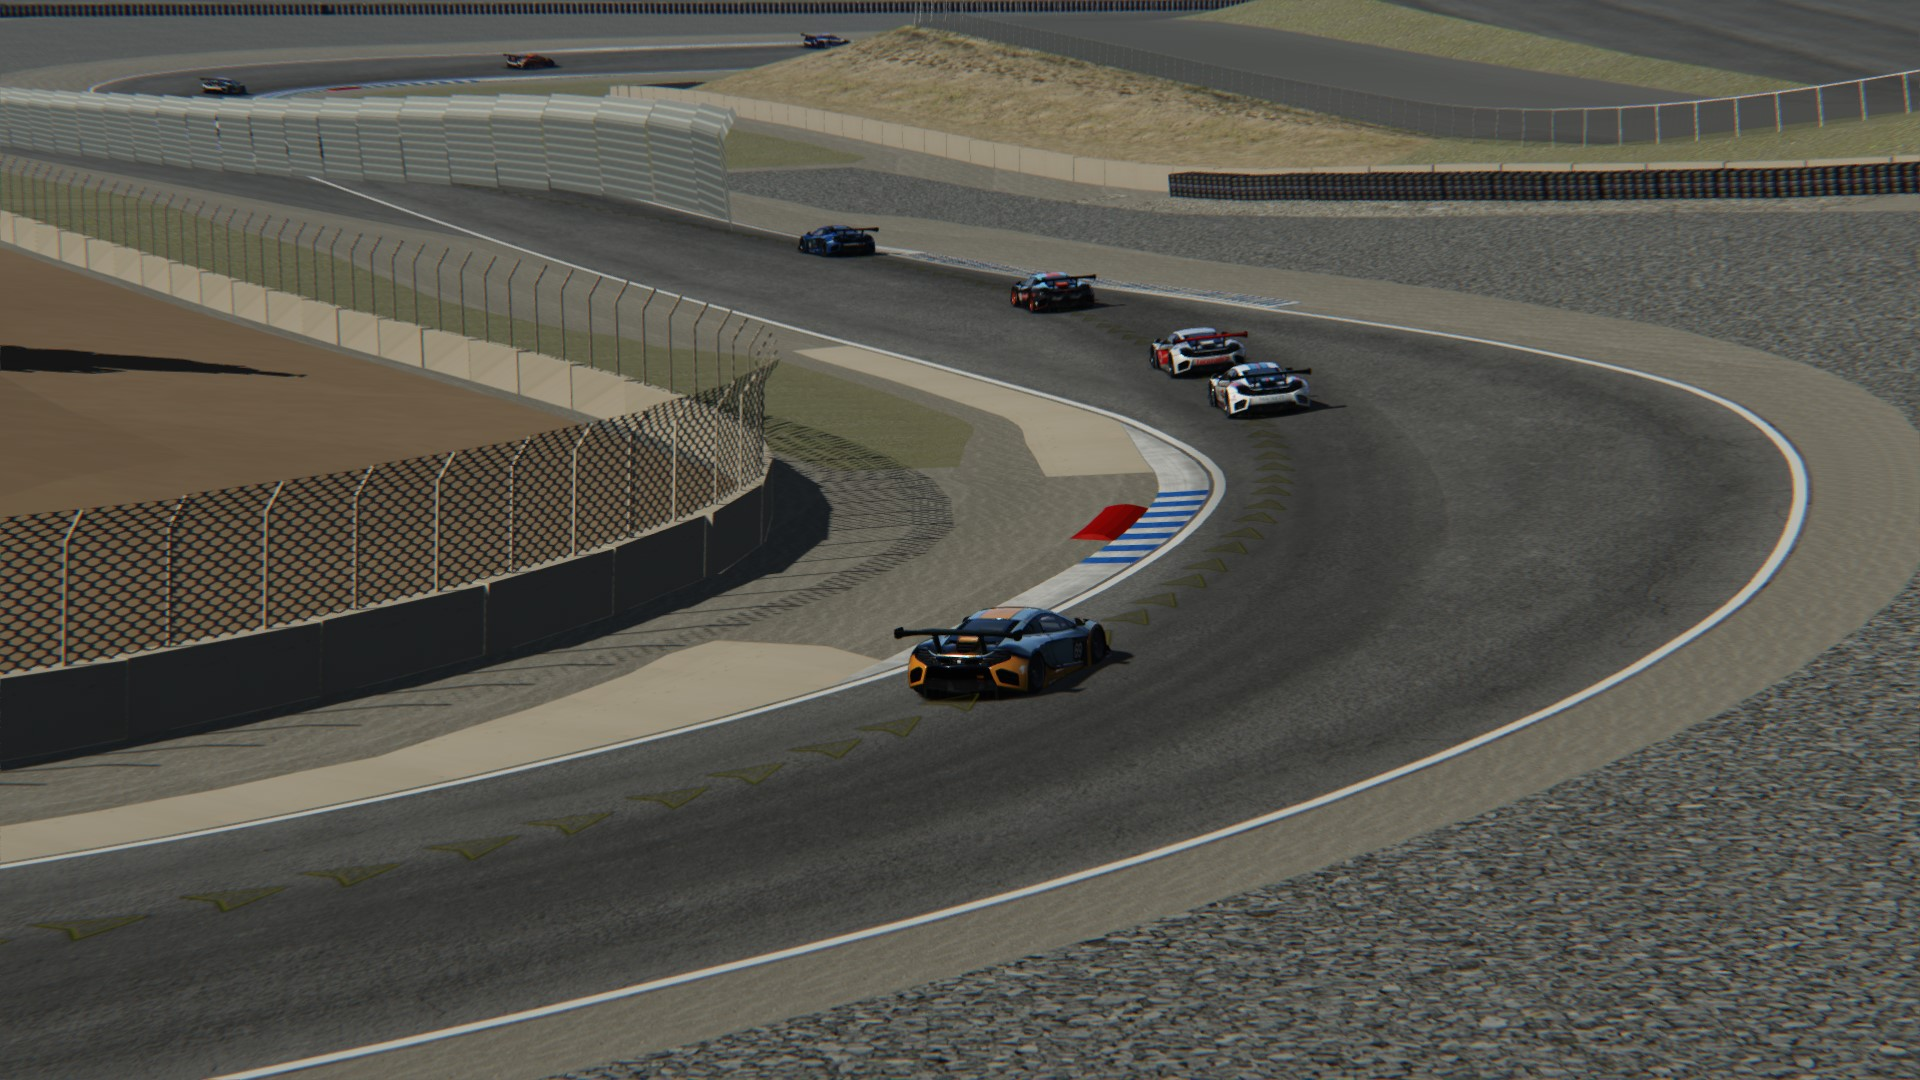 Screenshot_mclaren_mp412c_gt3_bs_lagunaseca_29-5-116-16-48-2.jpg